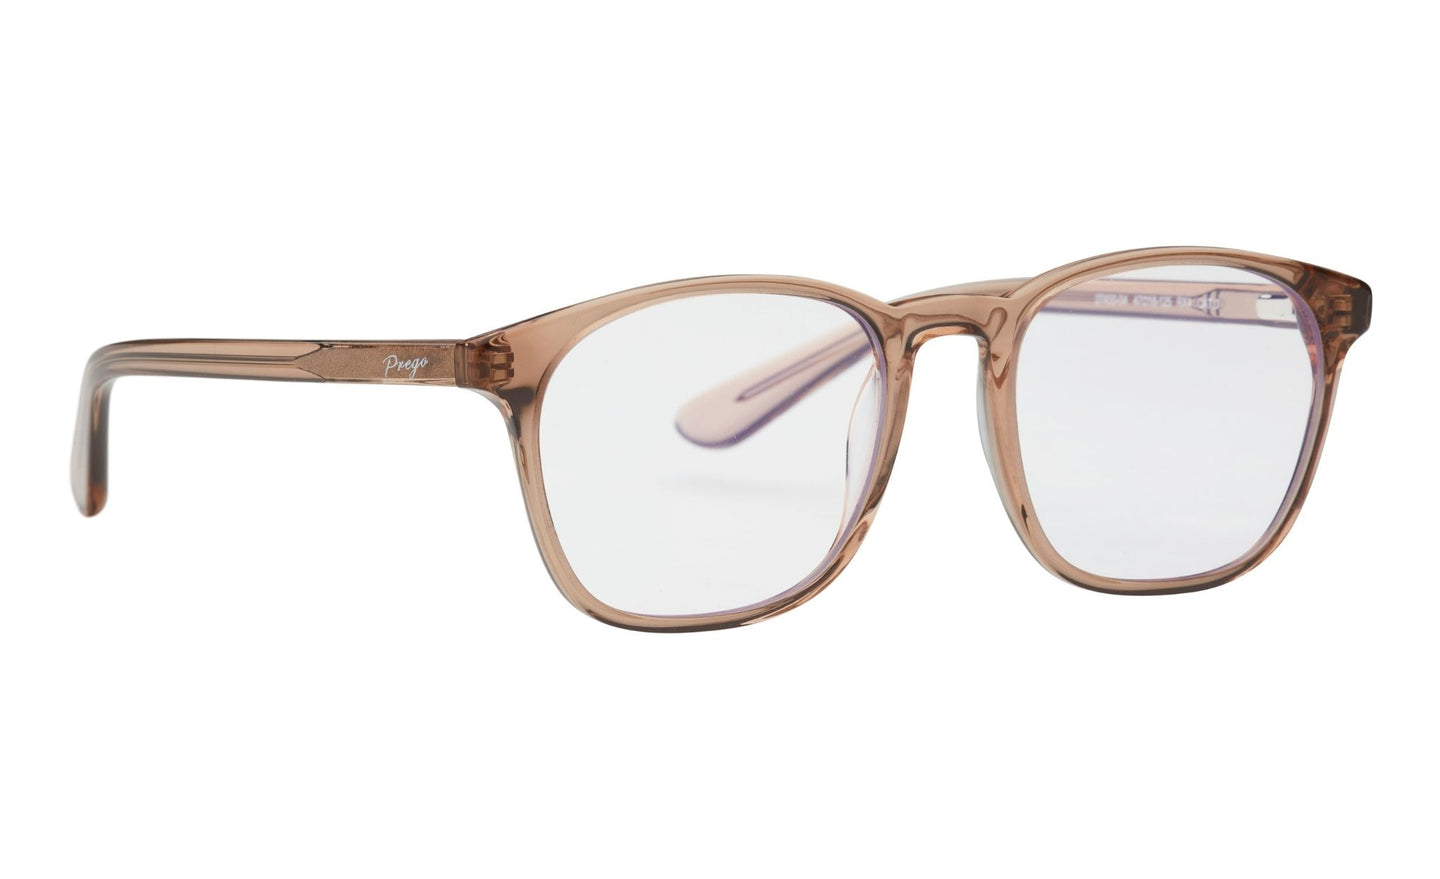 Prego - Bronte - Junior Bluelight Glasses